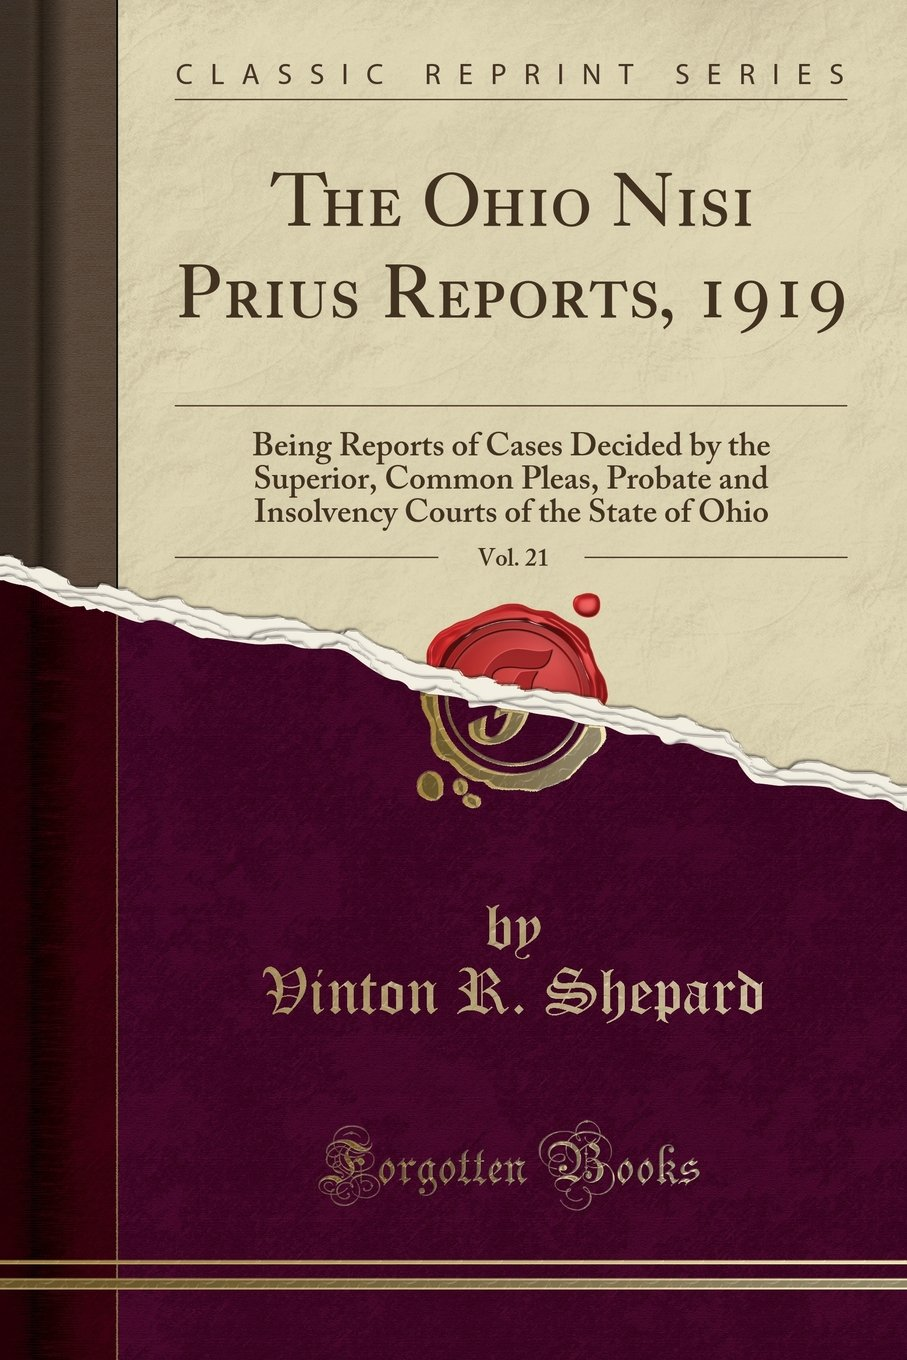 The Ohio Nisi Prius Reports, 1919, Vol. 21: Being Reports of Cases Decided by the Superior, Common Pleas, Probate and Insolvency Courts of the State of Ohio (Classic Reprint) ebook